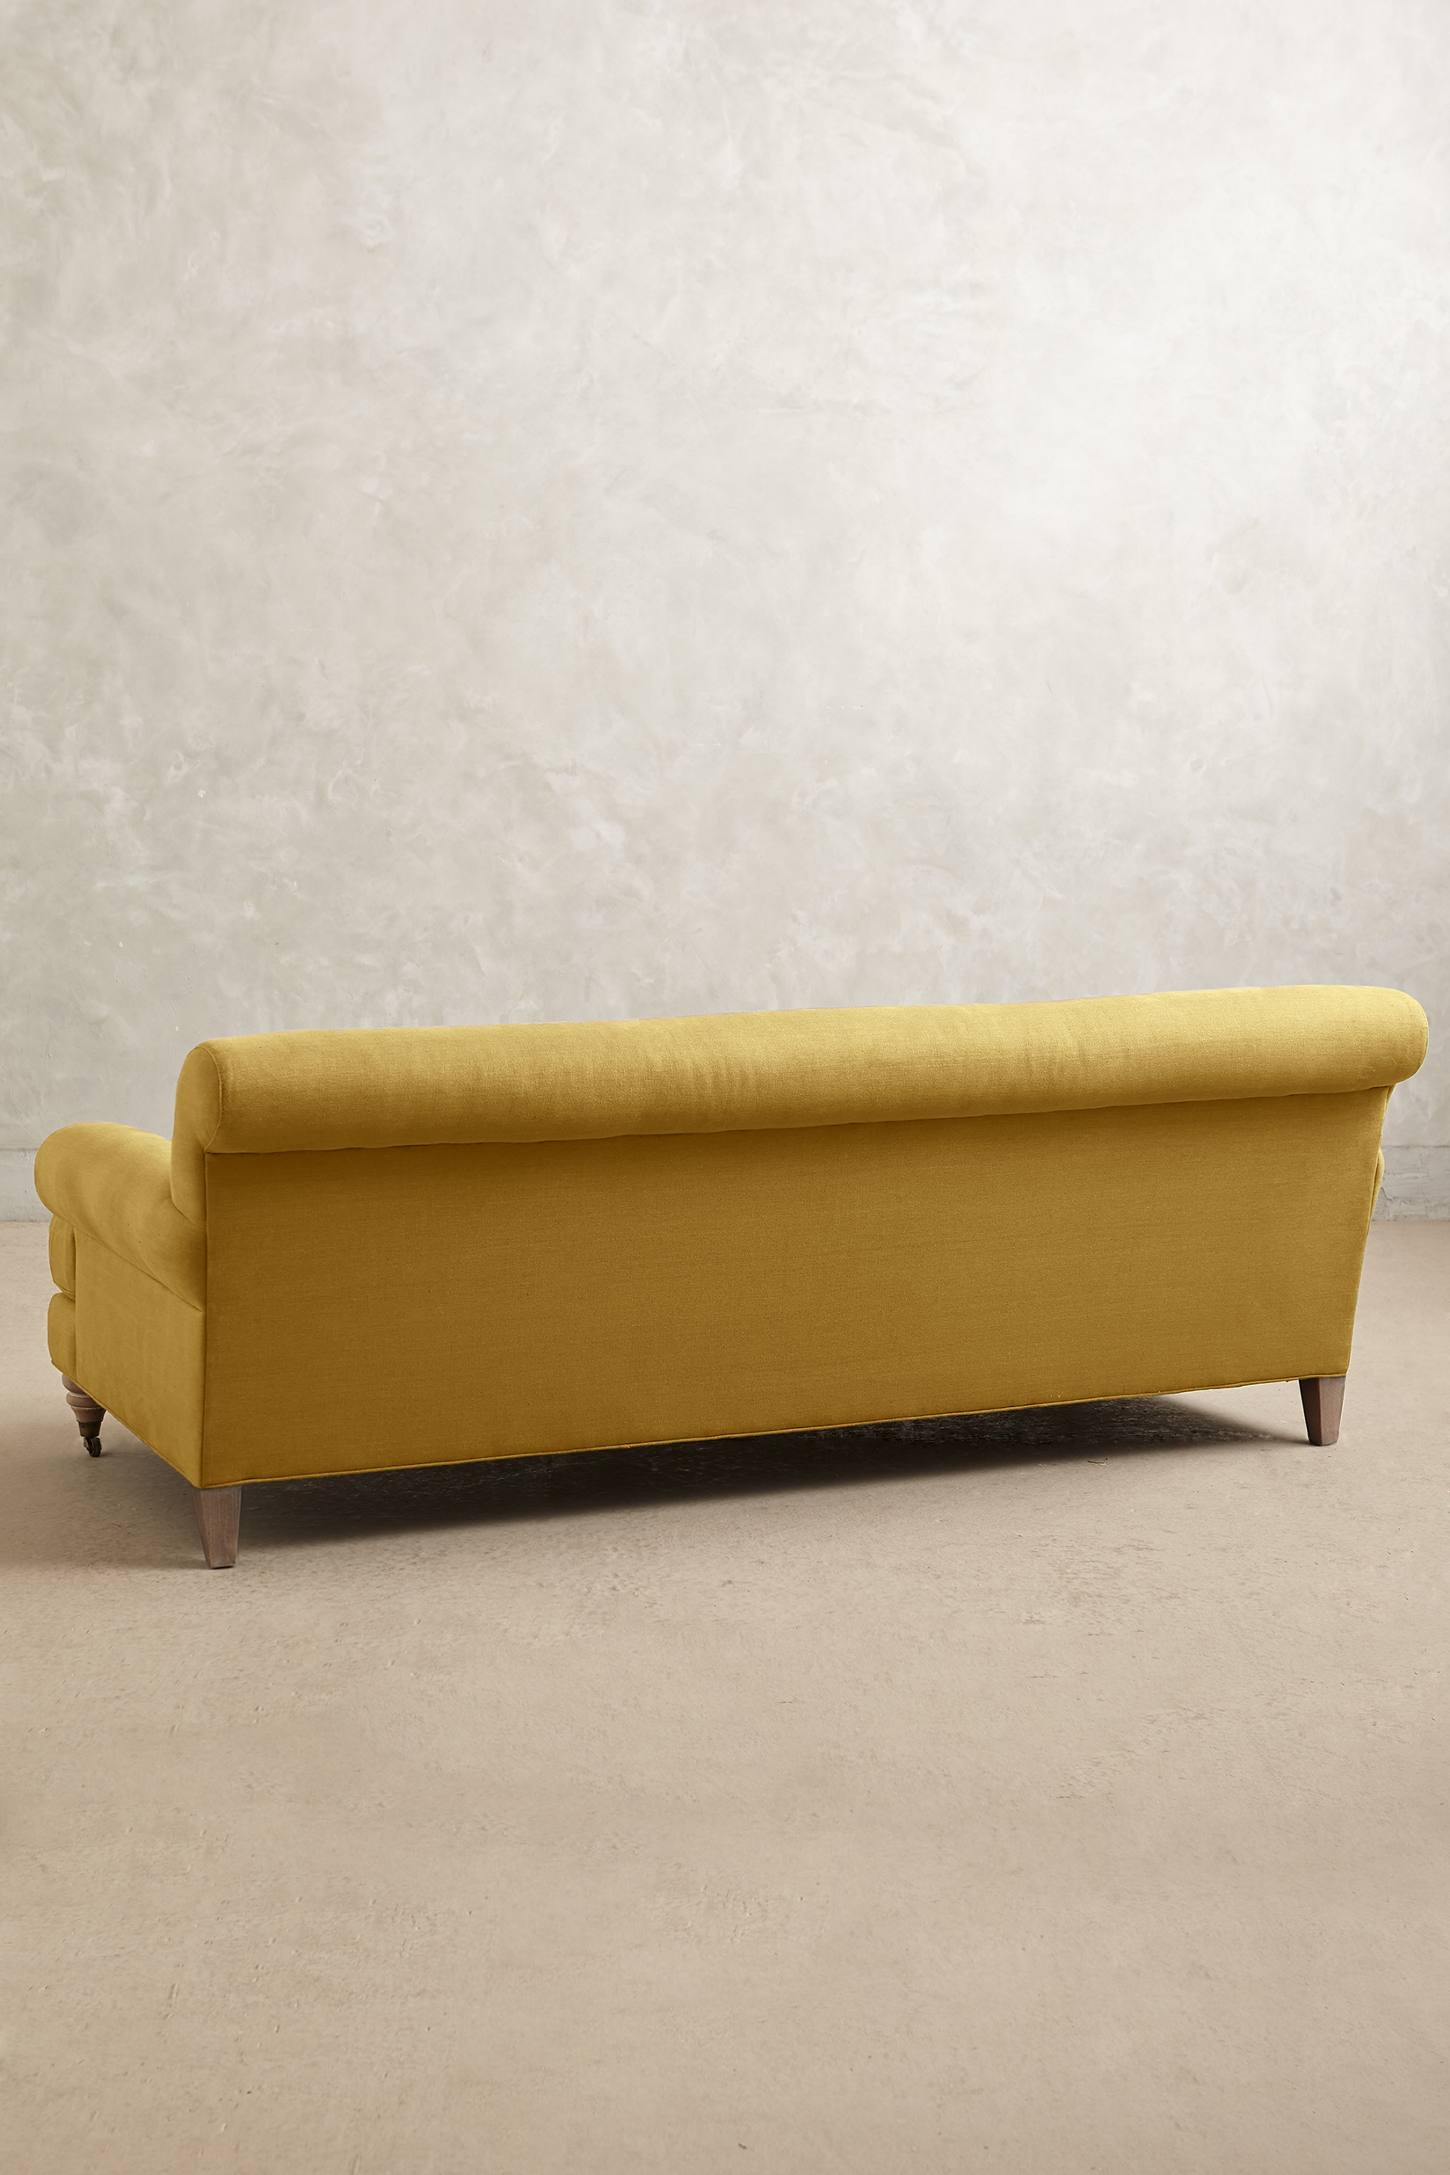 Slide View: 2: Linen Willoughby Sofa, Wilcox